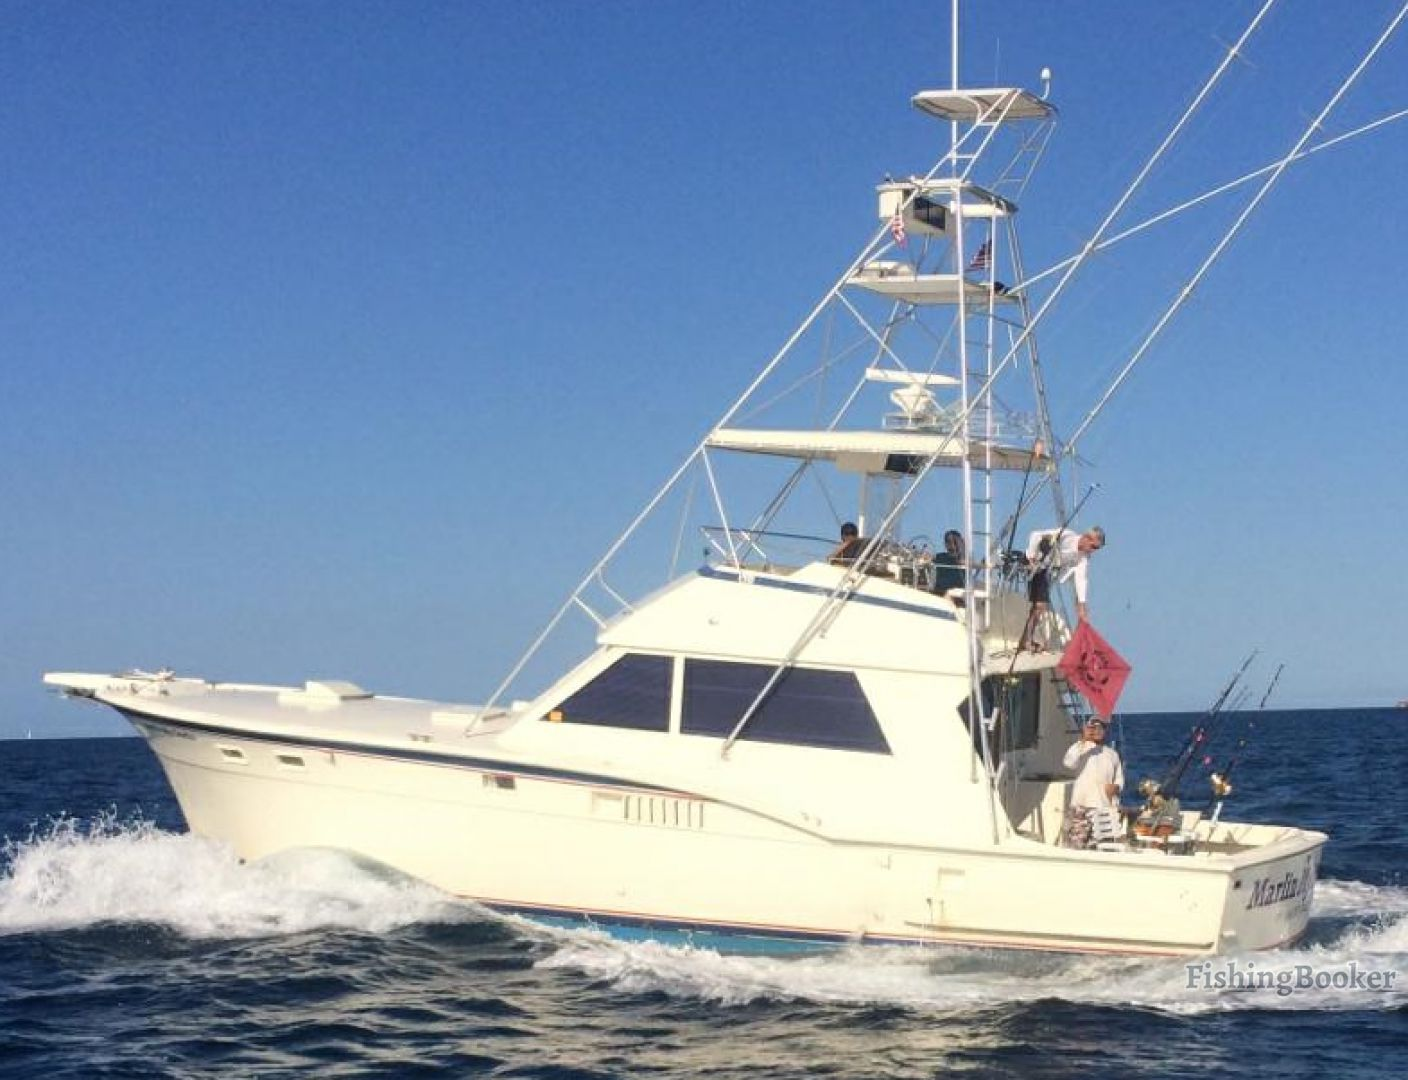 Marlin my darlin sportfishing fort lauderdale florida for Deerfield beach fishing charter